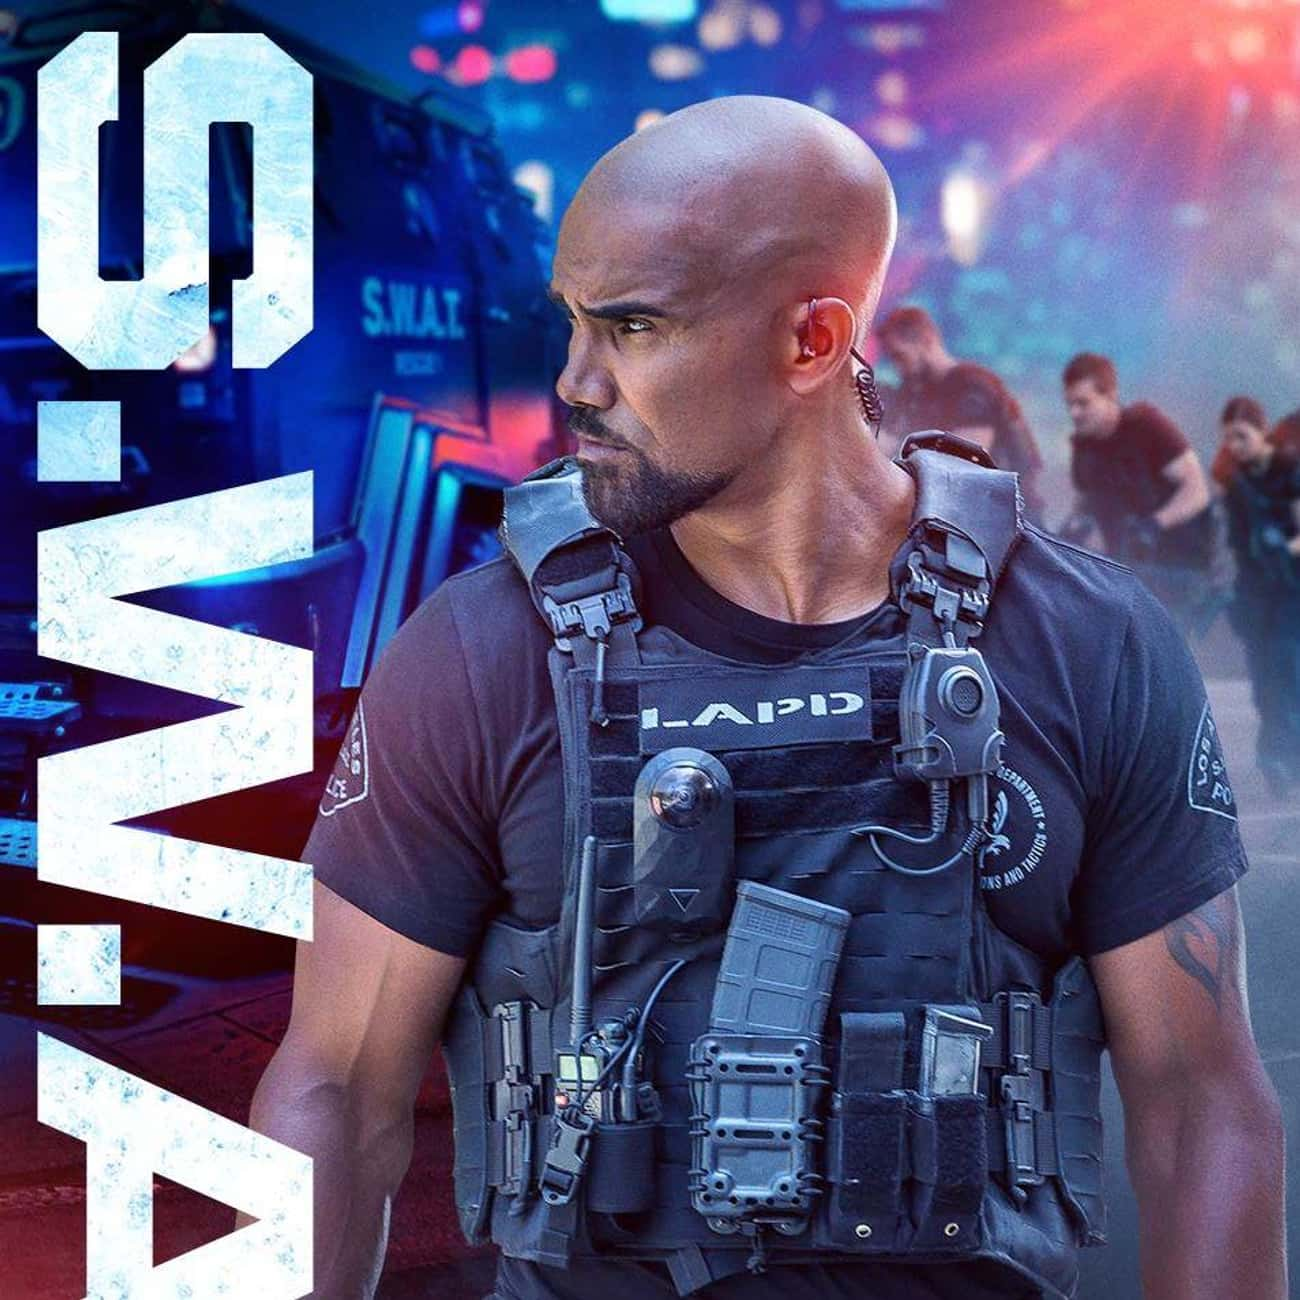 SWAT is listed (or ranked) 4 on the list The Best New Procedural Dramas of the Last Few Years